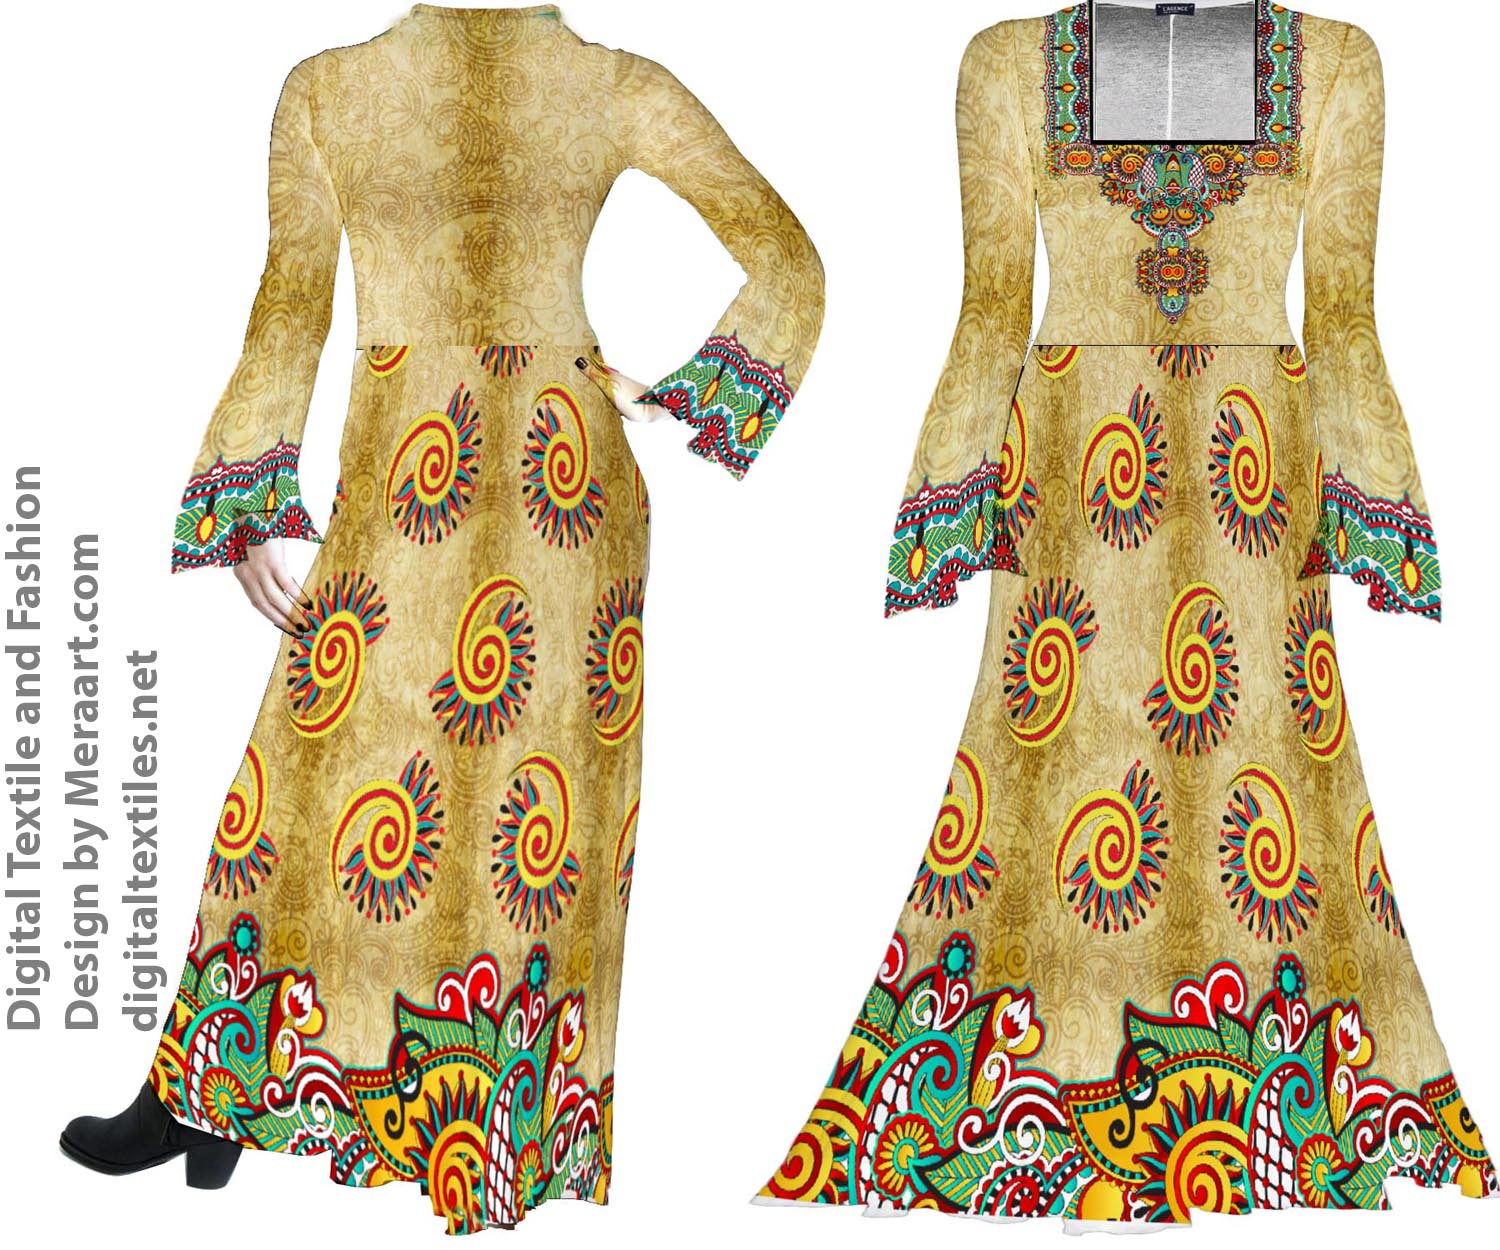 Digital textile fashion prints designer dress online servies (5)